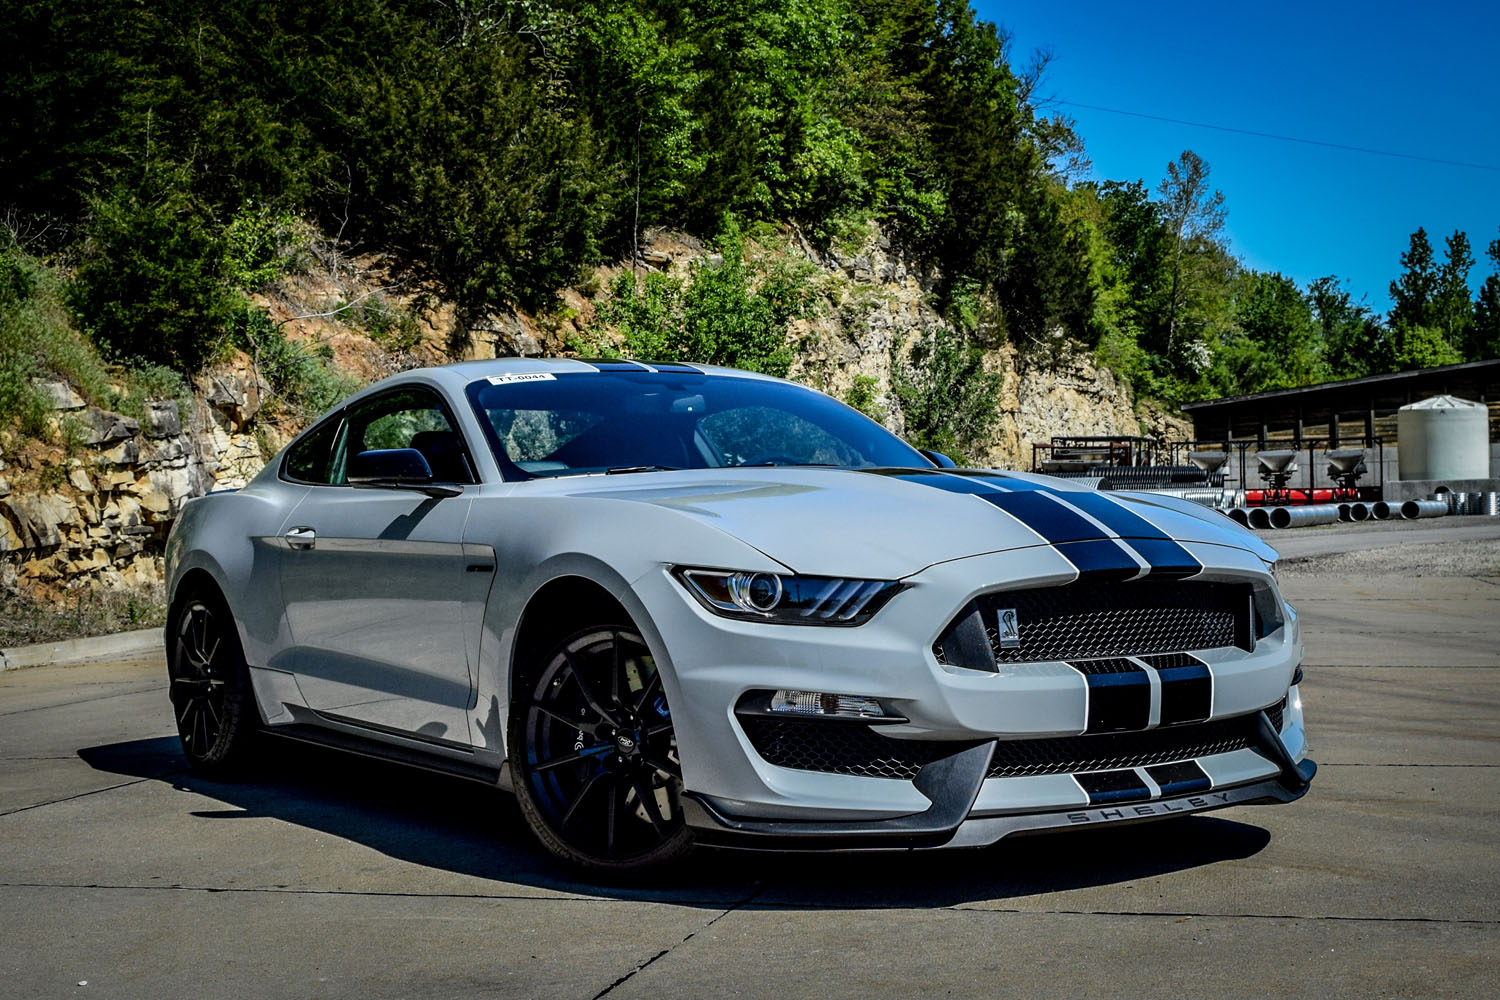 Best Mustang Color >> A day with the new Shelby Mustang GT350